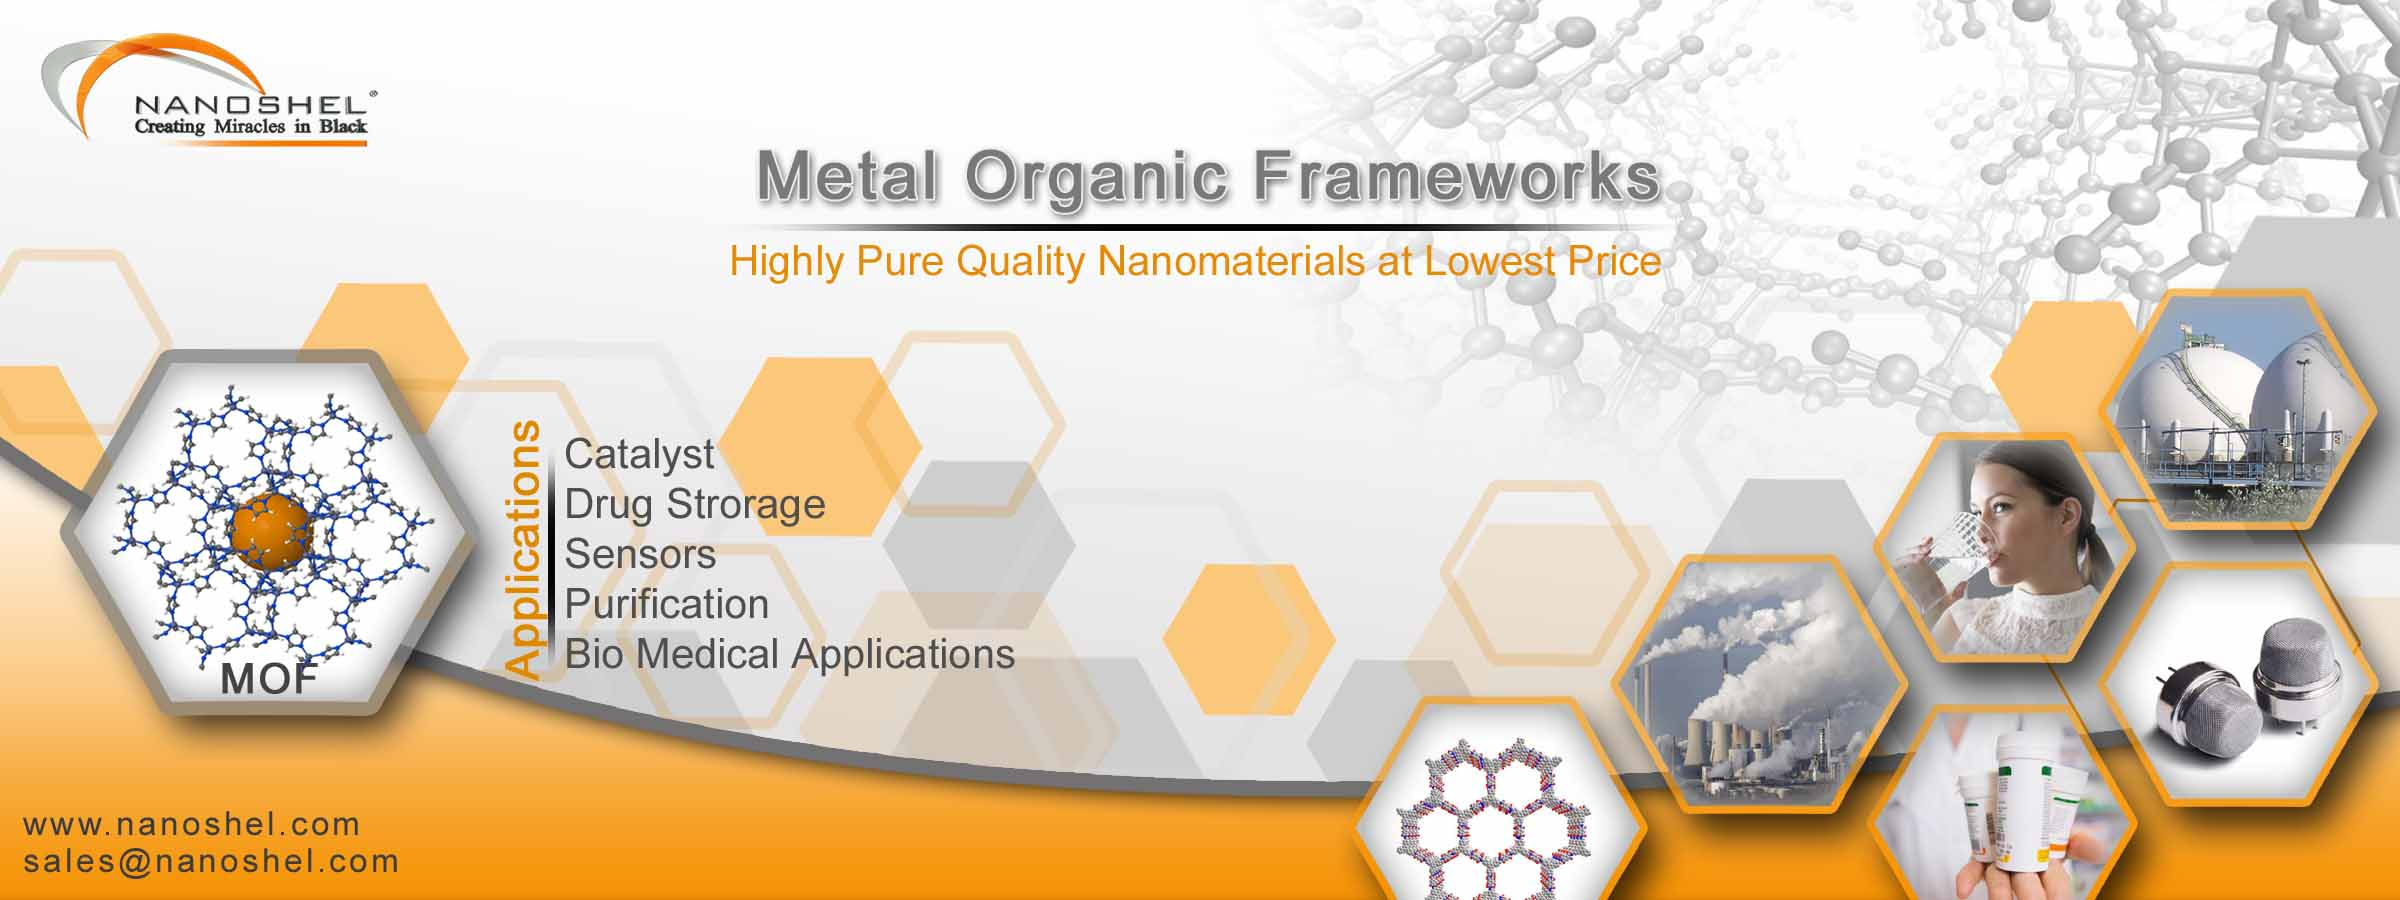 Nickel based Metal Organic Framework